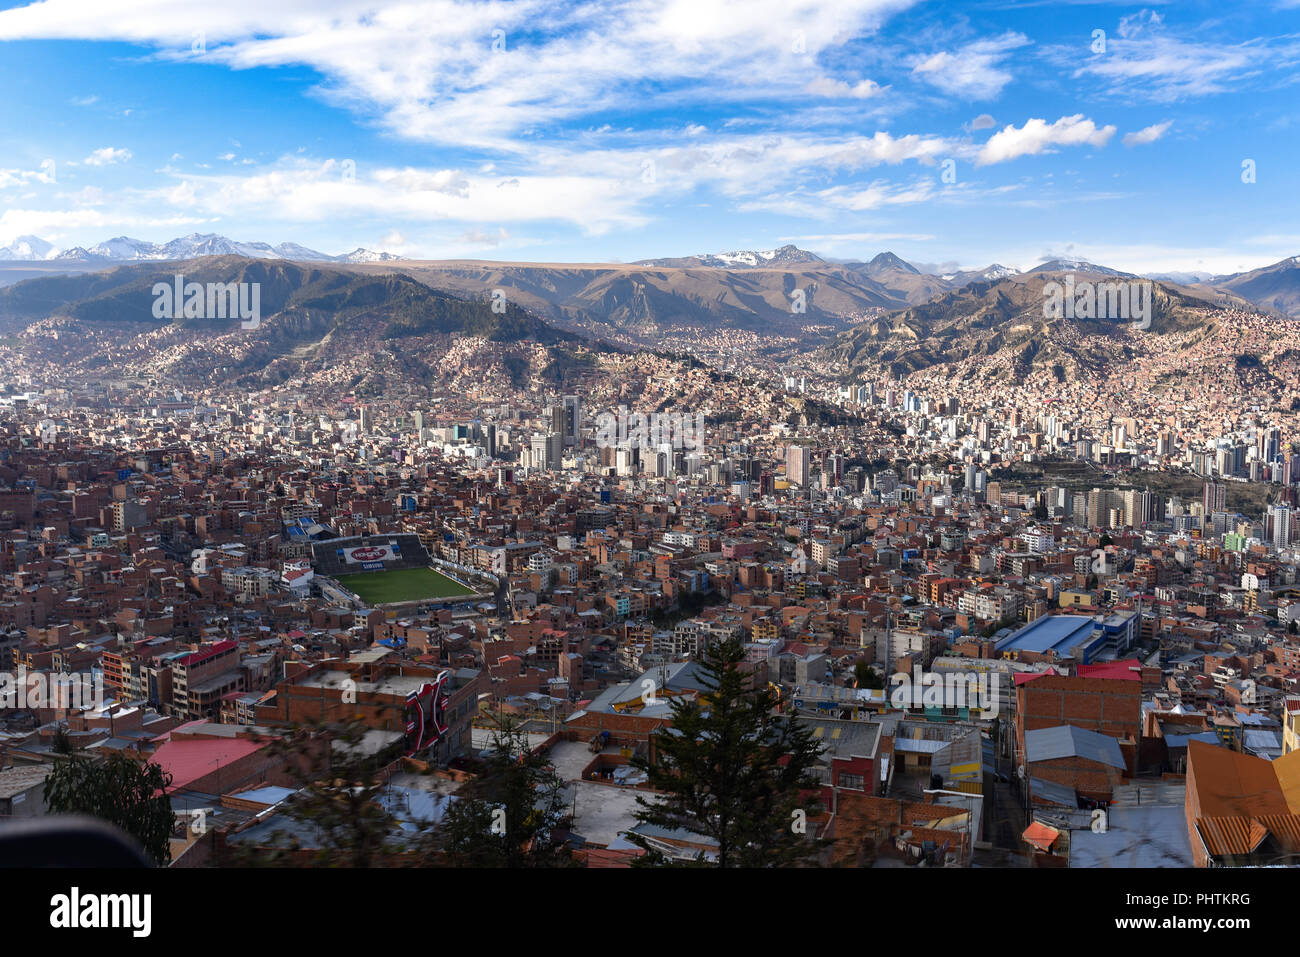 Panoramic views across the city of La Paz, Bolivia - Stock Image